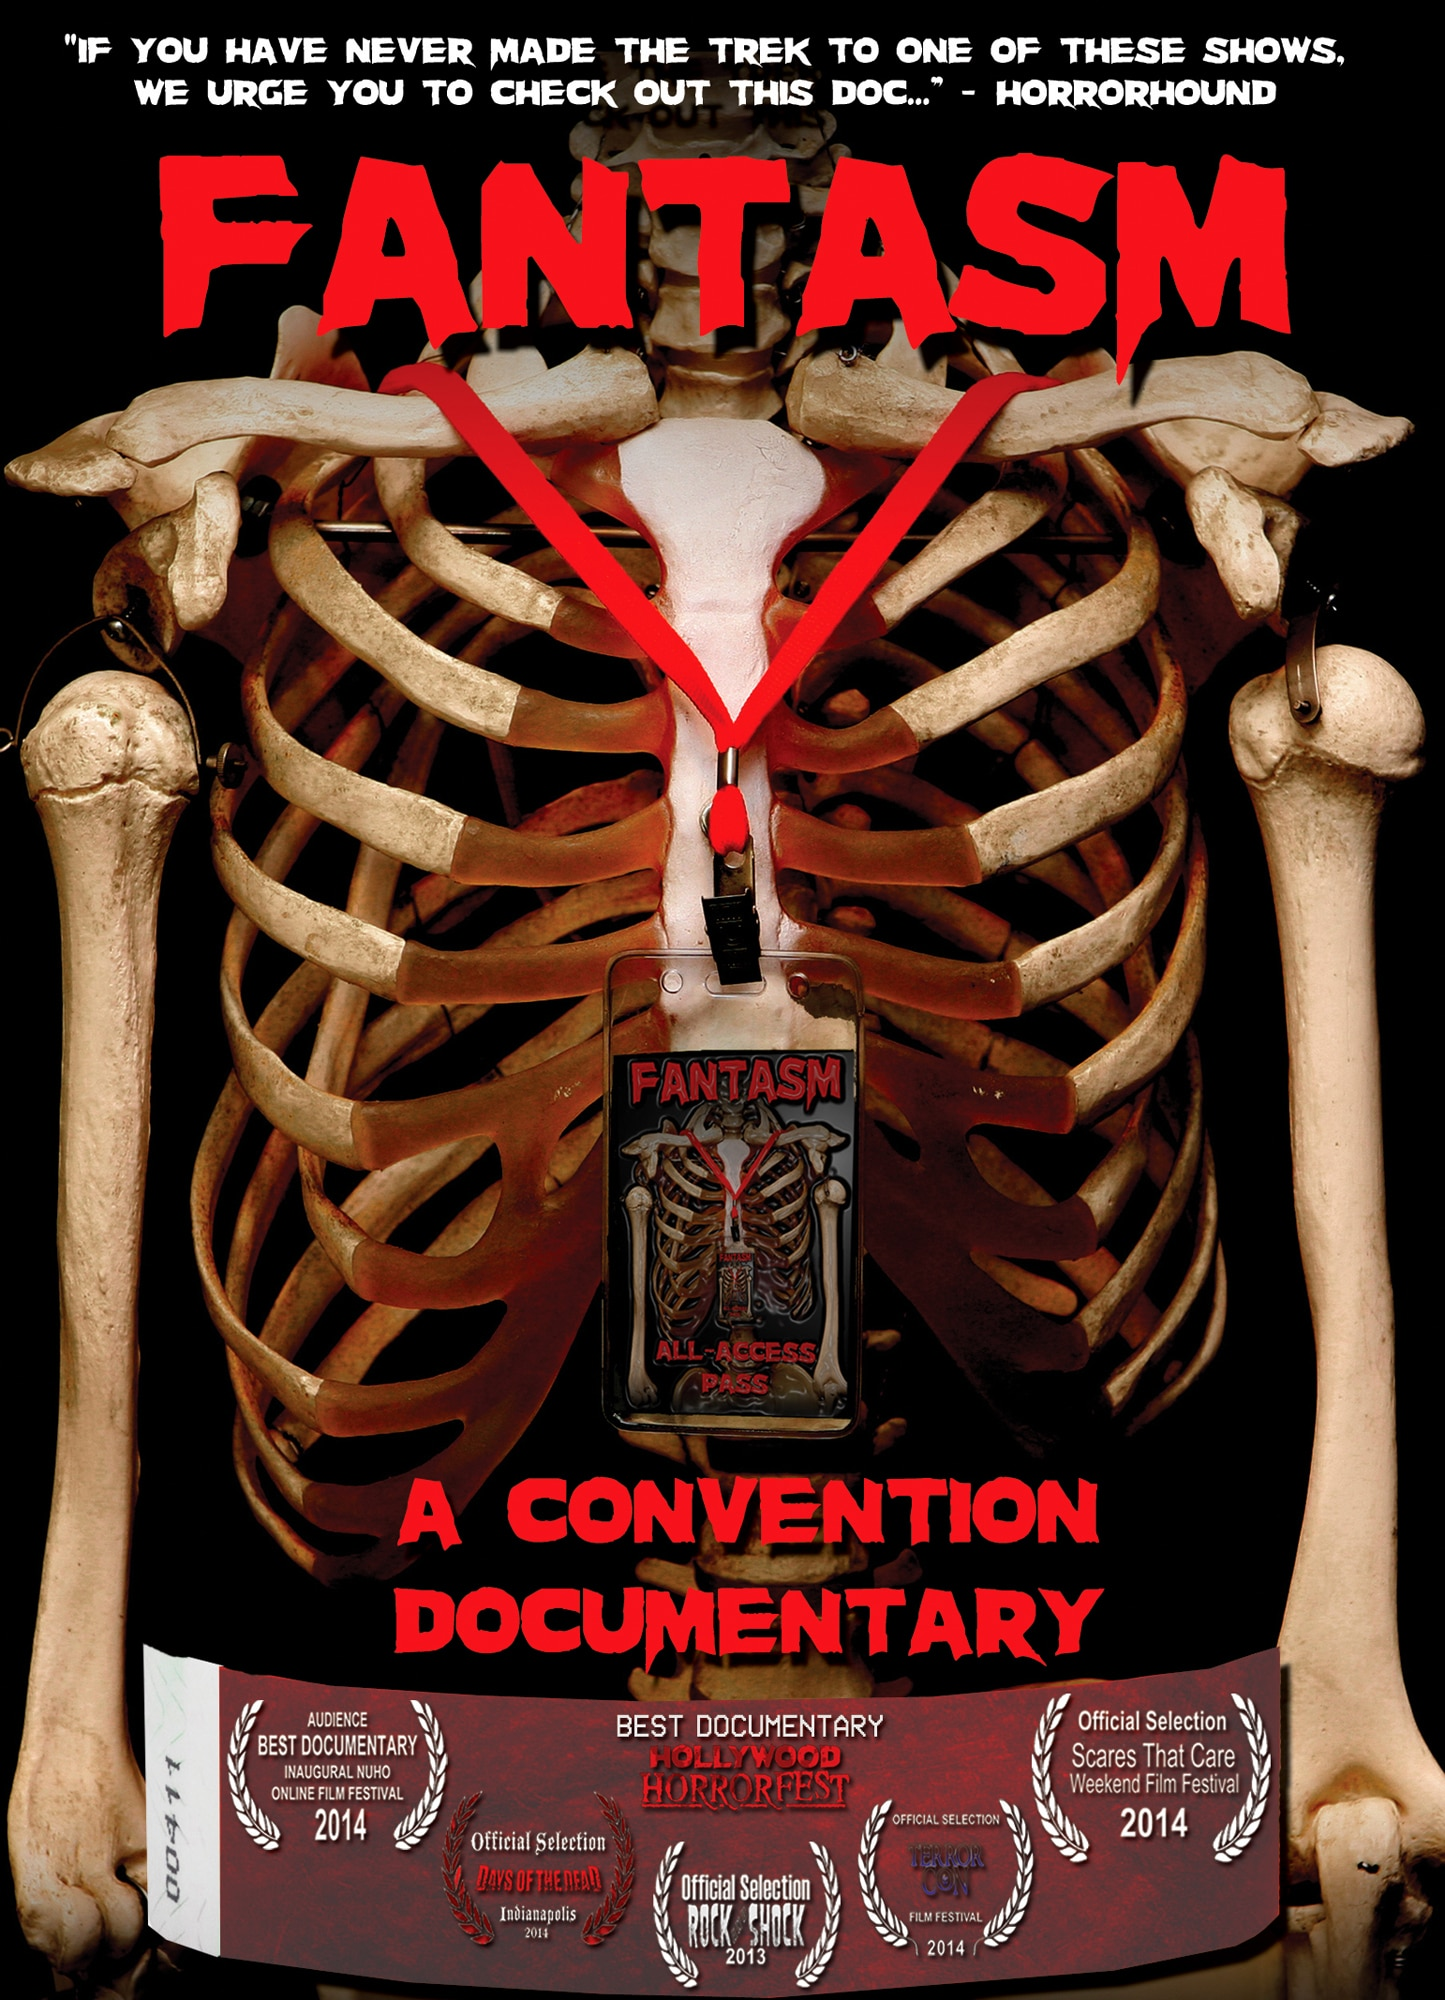 Fantasm Horror Documentary Hitting DVD November 11th